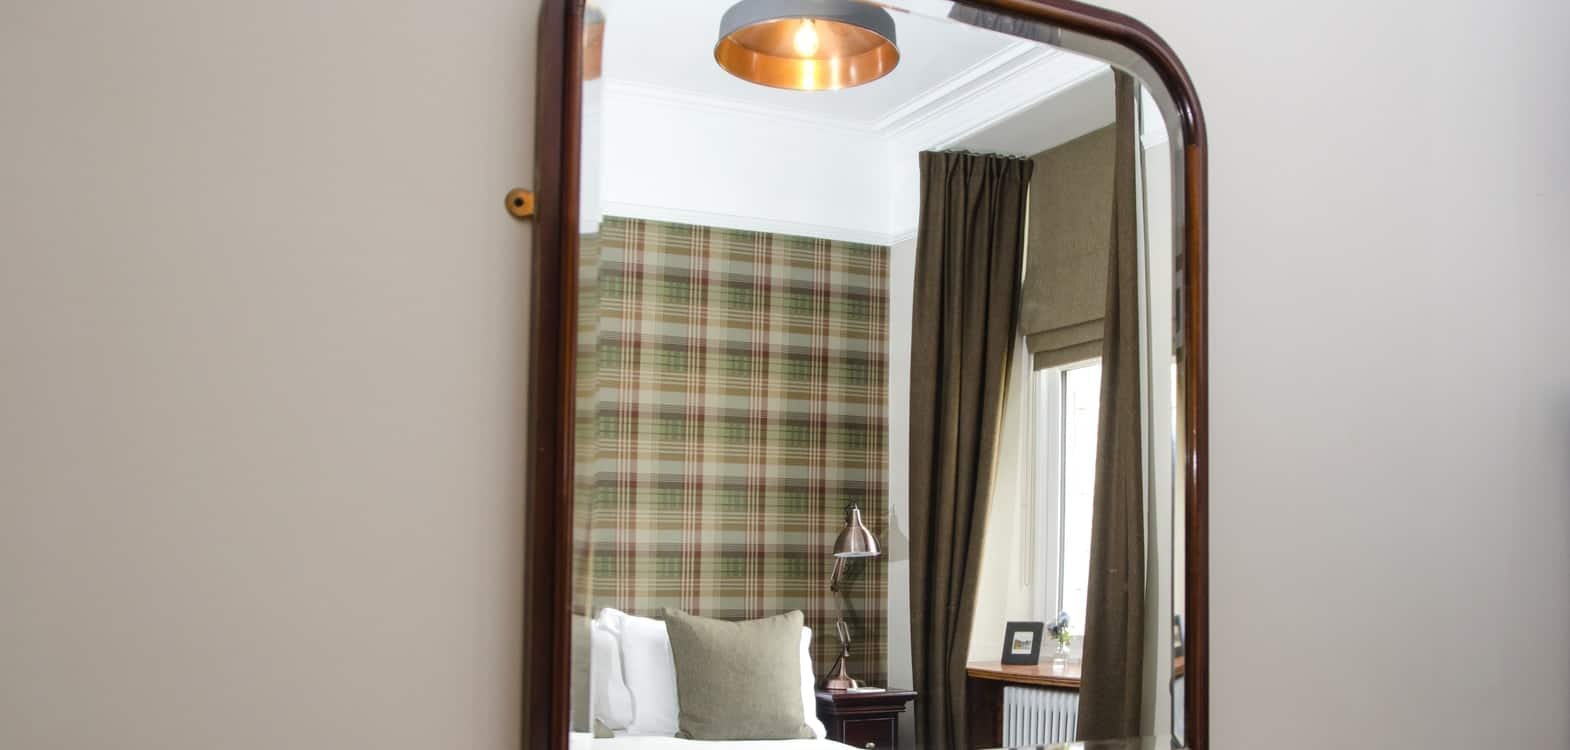 View of the Mulberry wallpaper in Skye Bedroom at Firhall Bed & Breakfast in Grantown on Spey